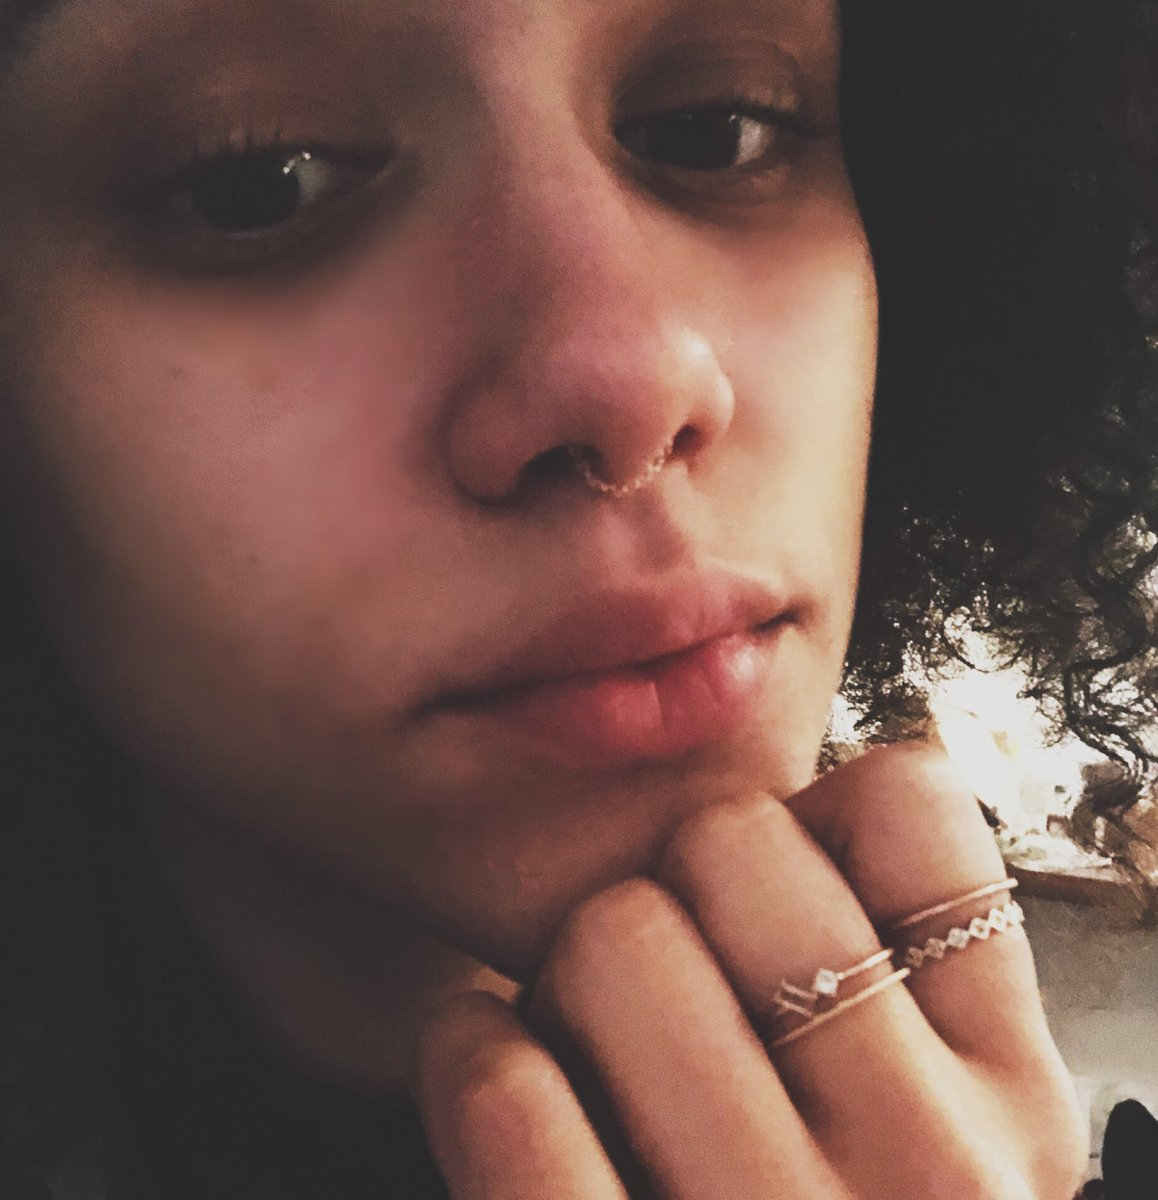 Nathalie Emmanuel On Twitter I Have This One Septum Ring By